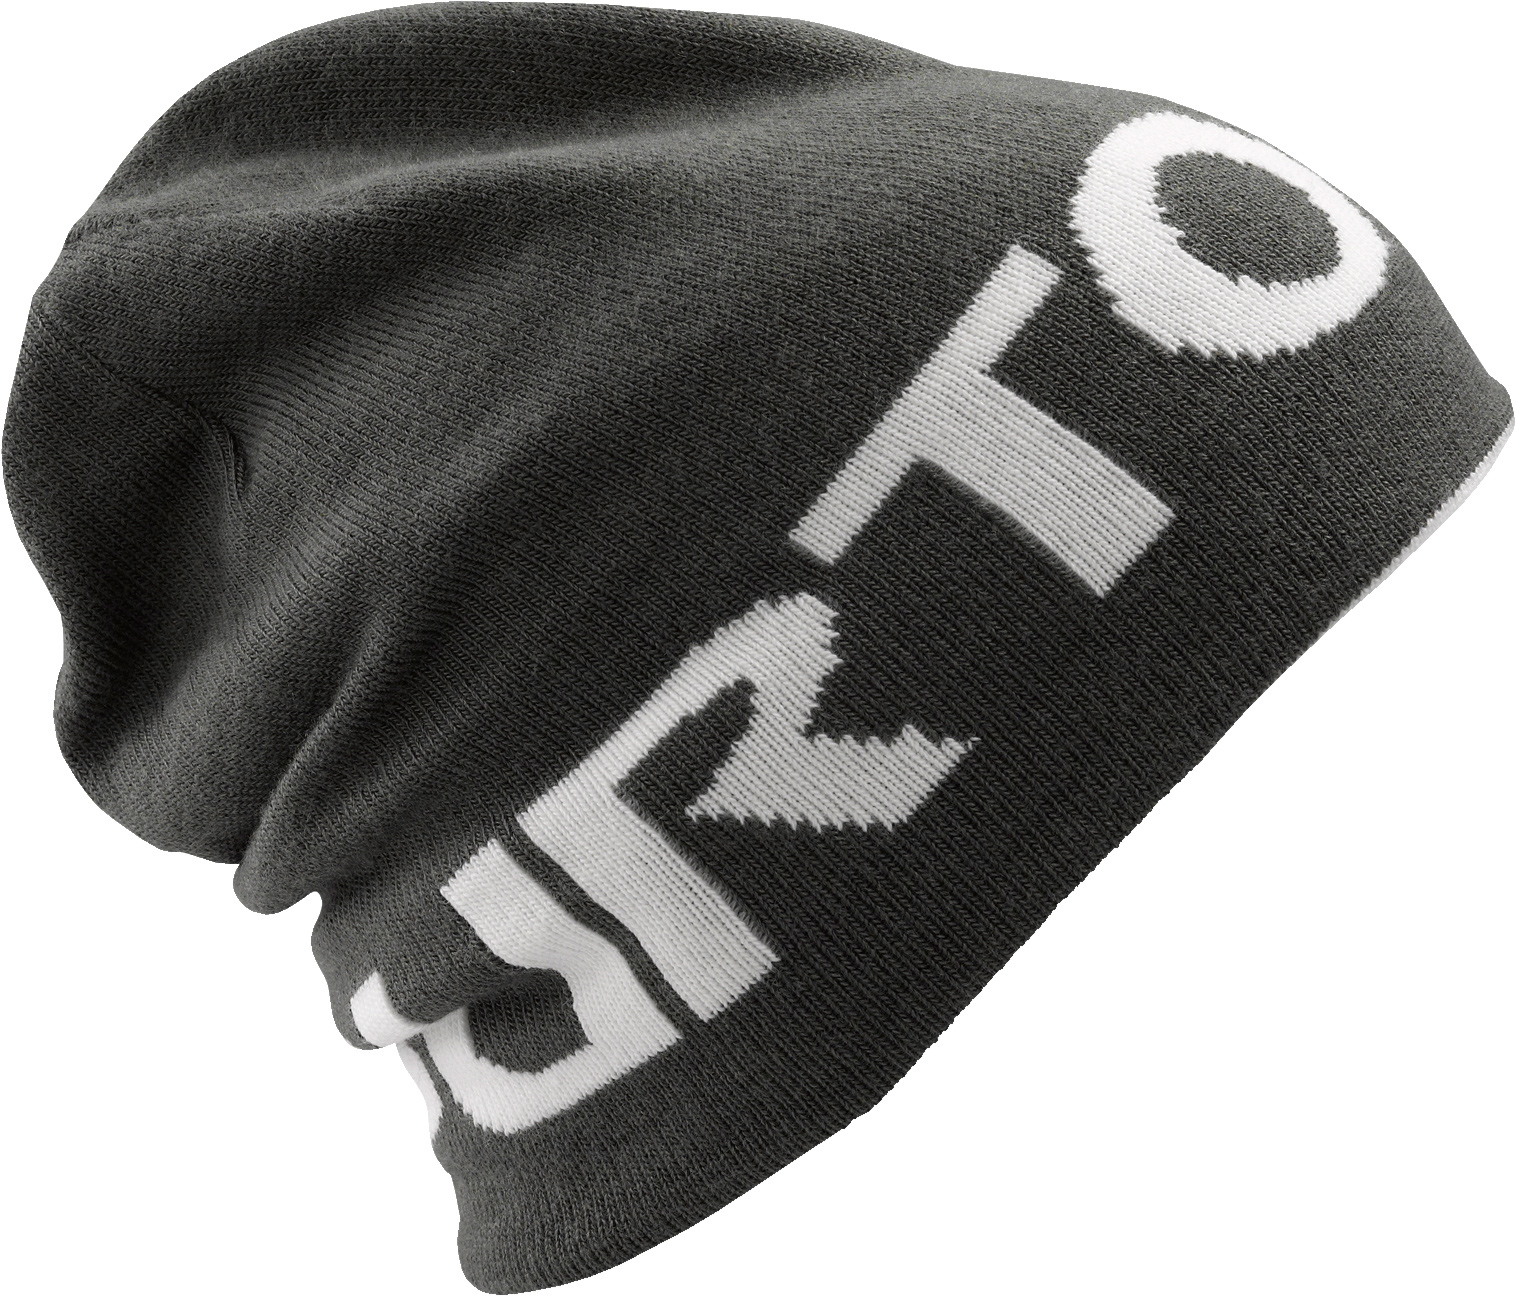 Snowboard Key Features of the Burton Billboard Beanie: 100% Acrylic Reversible Beanie in Solid Jacquard Skully Fit - $12.95